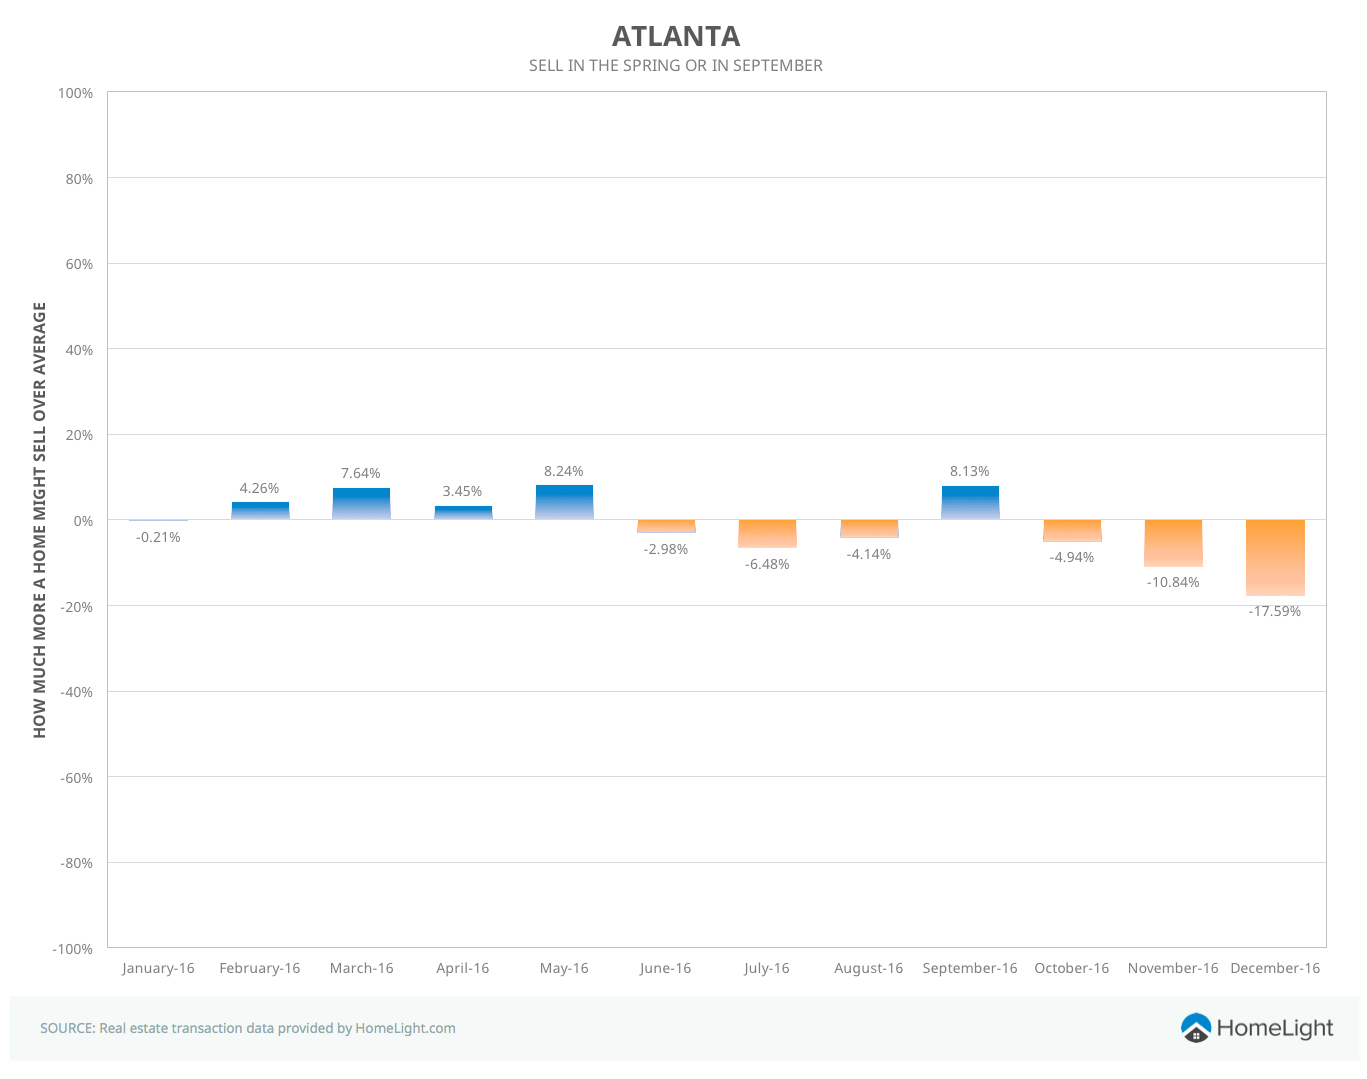 The best time to sell a house in Atlanta